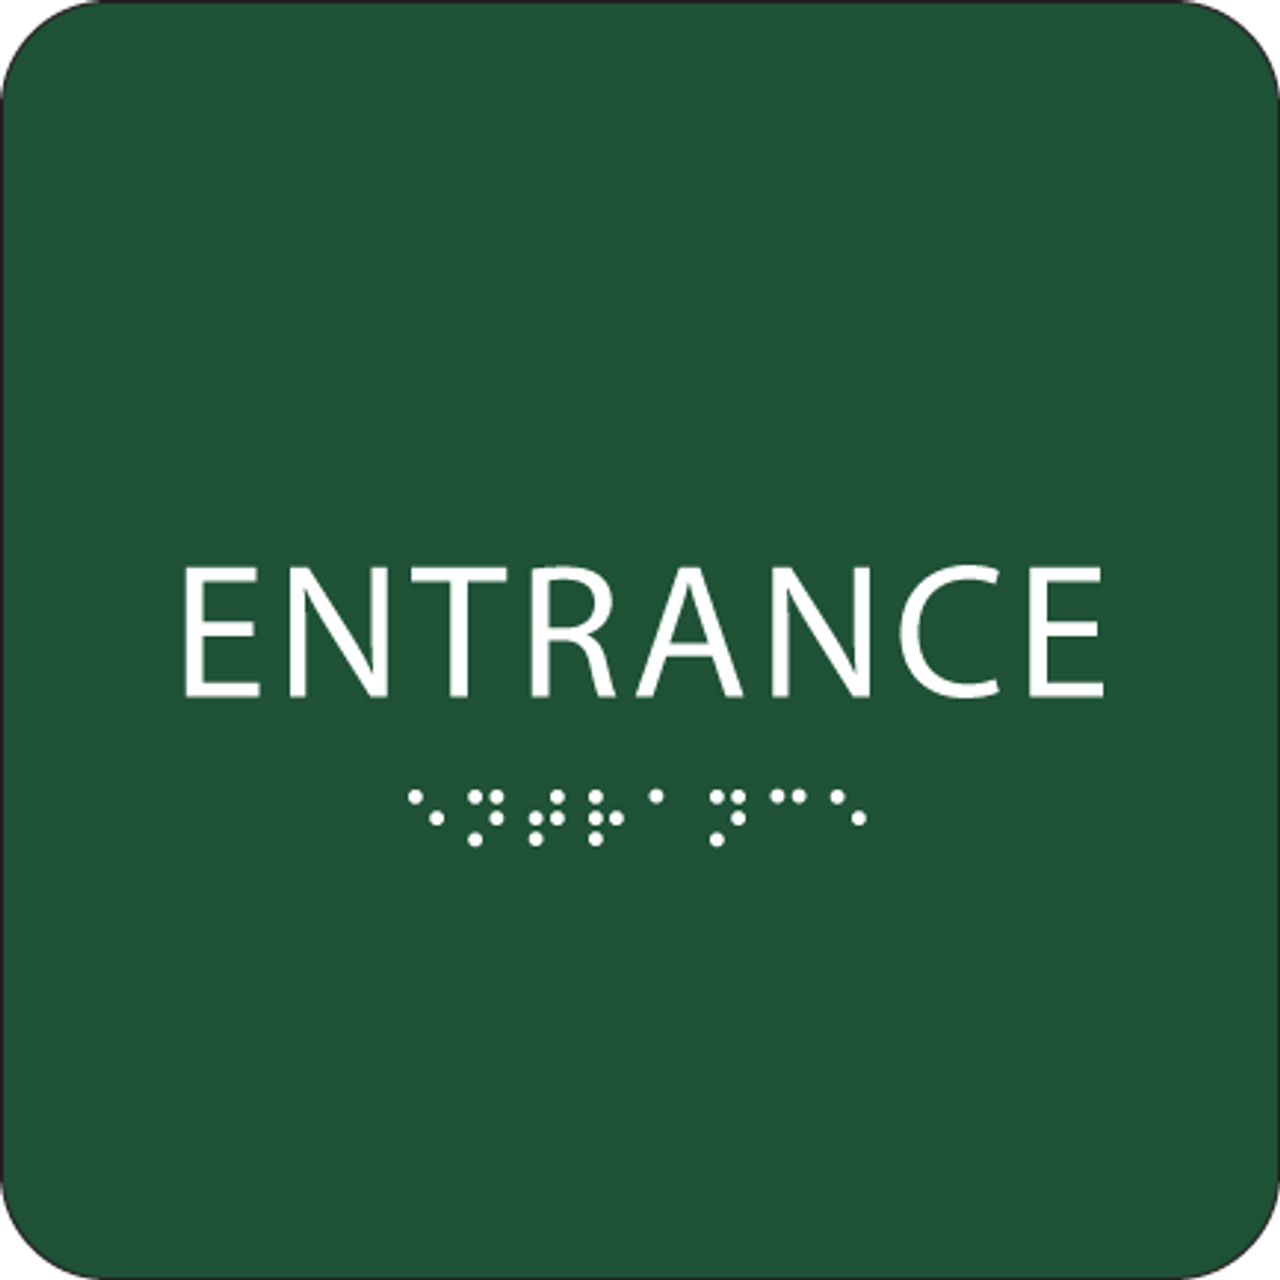 Green Tactile Entrance Sign